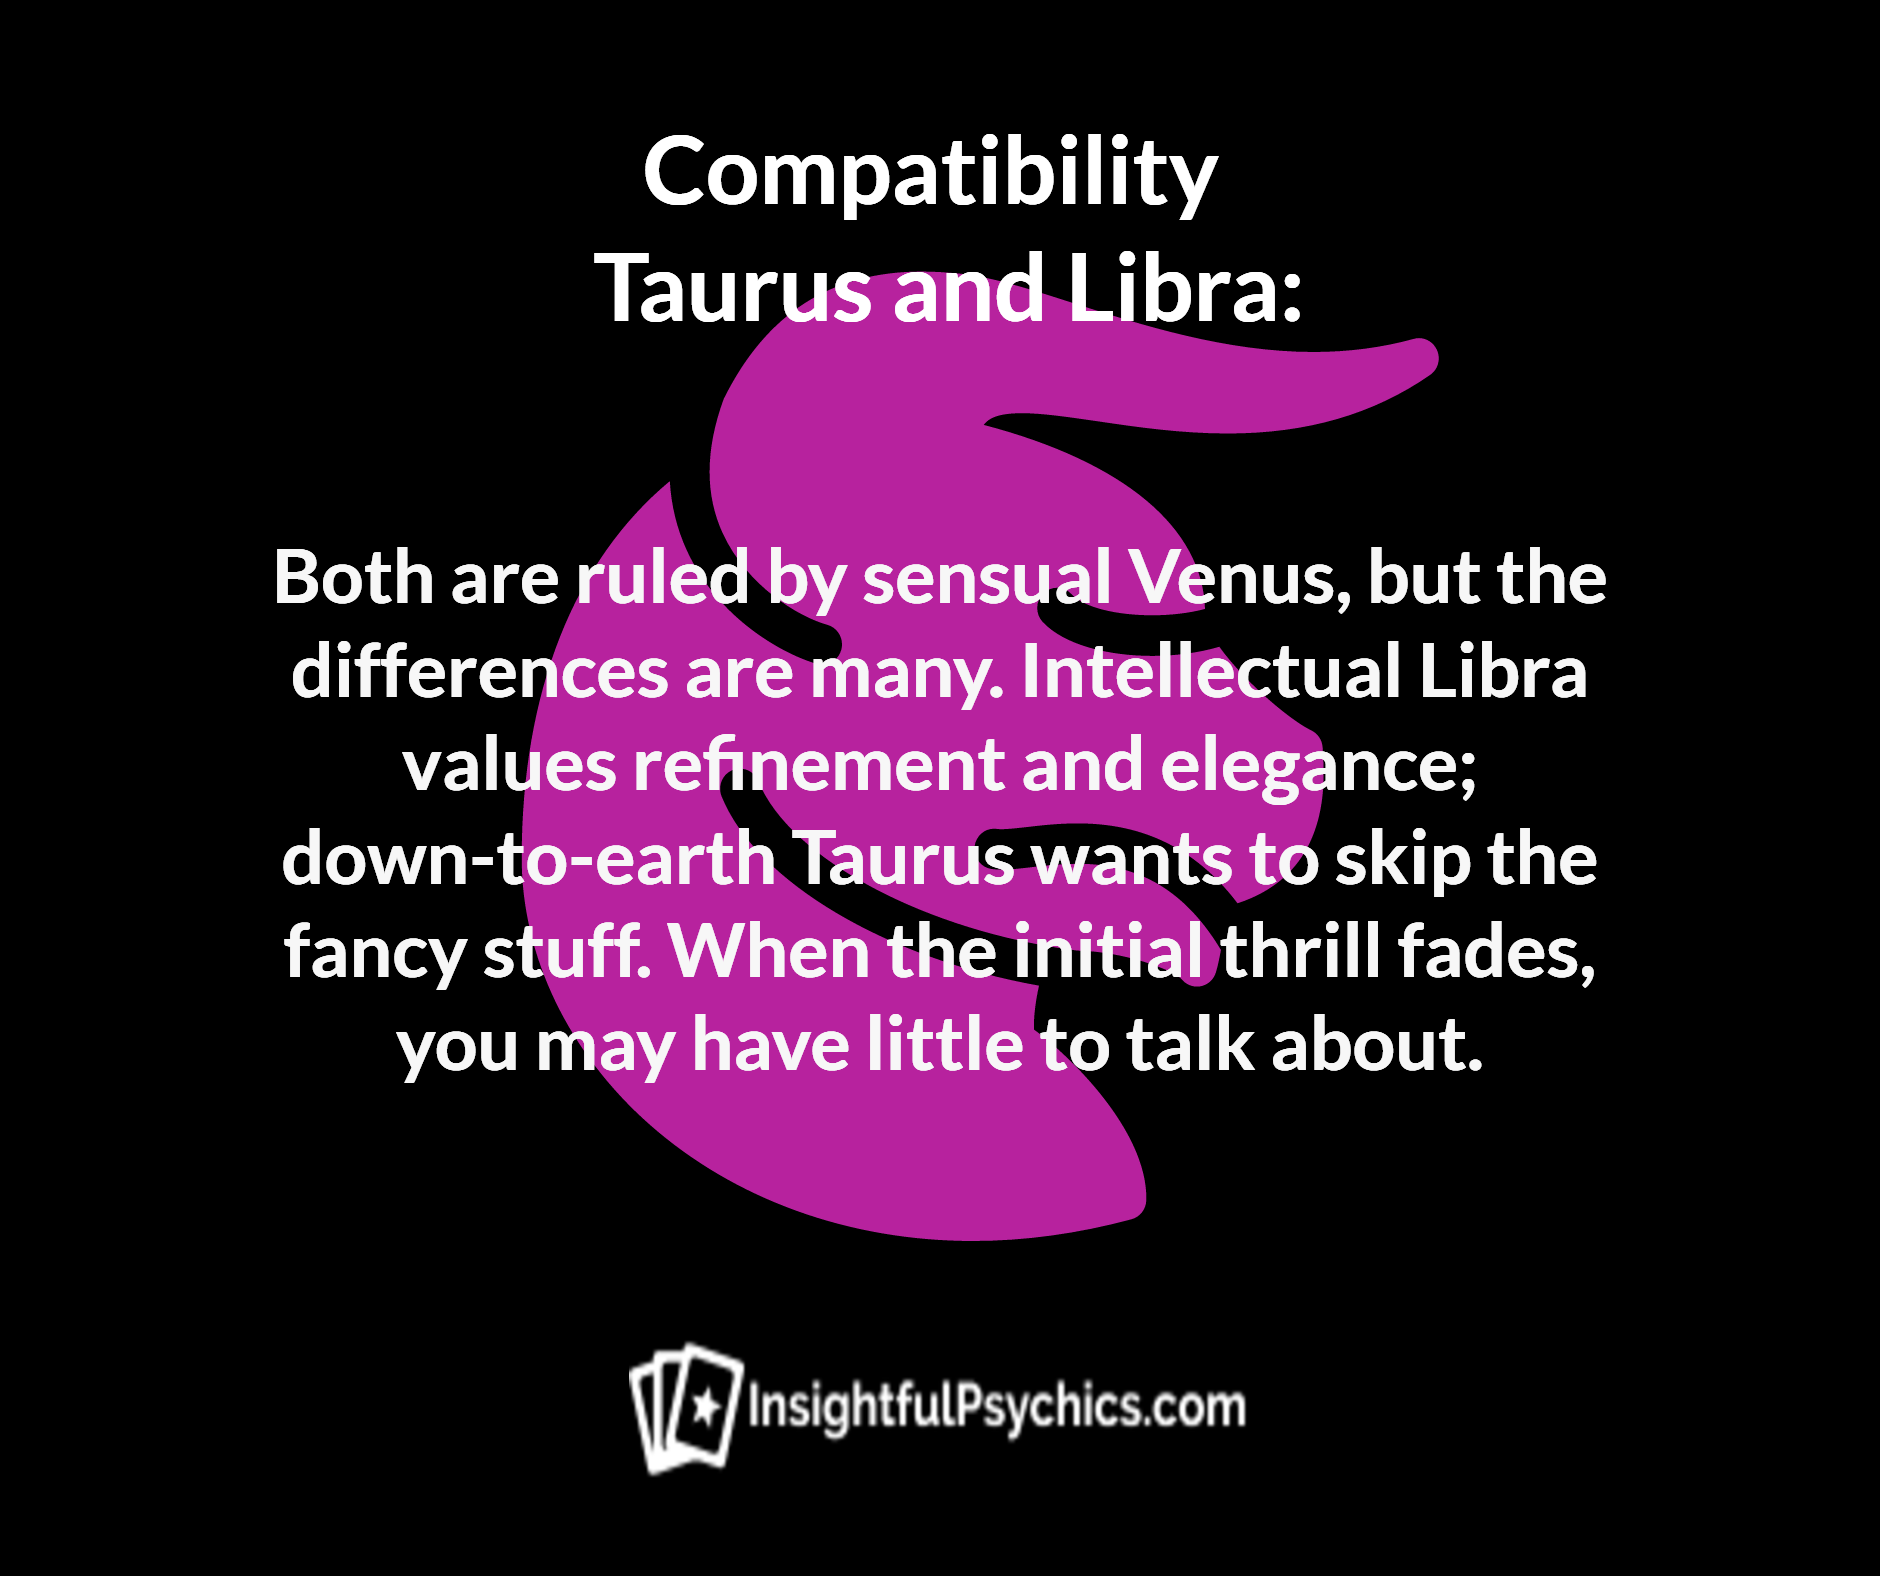 taurus and libra whats your compatibility? #tauruscompatibility #tauruslibra #taurusandlibra #libracompatibility #taurus #libra